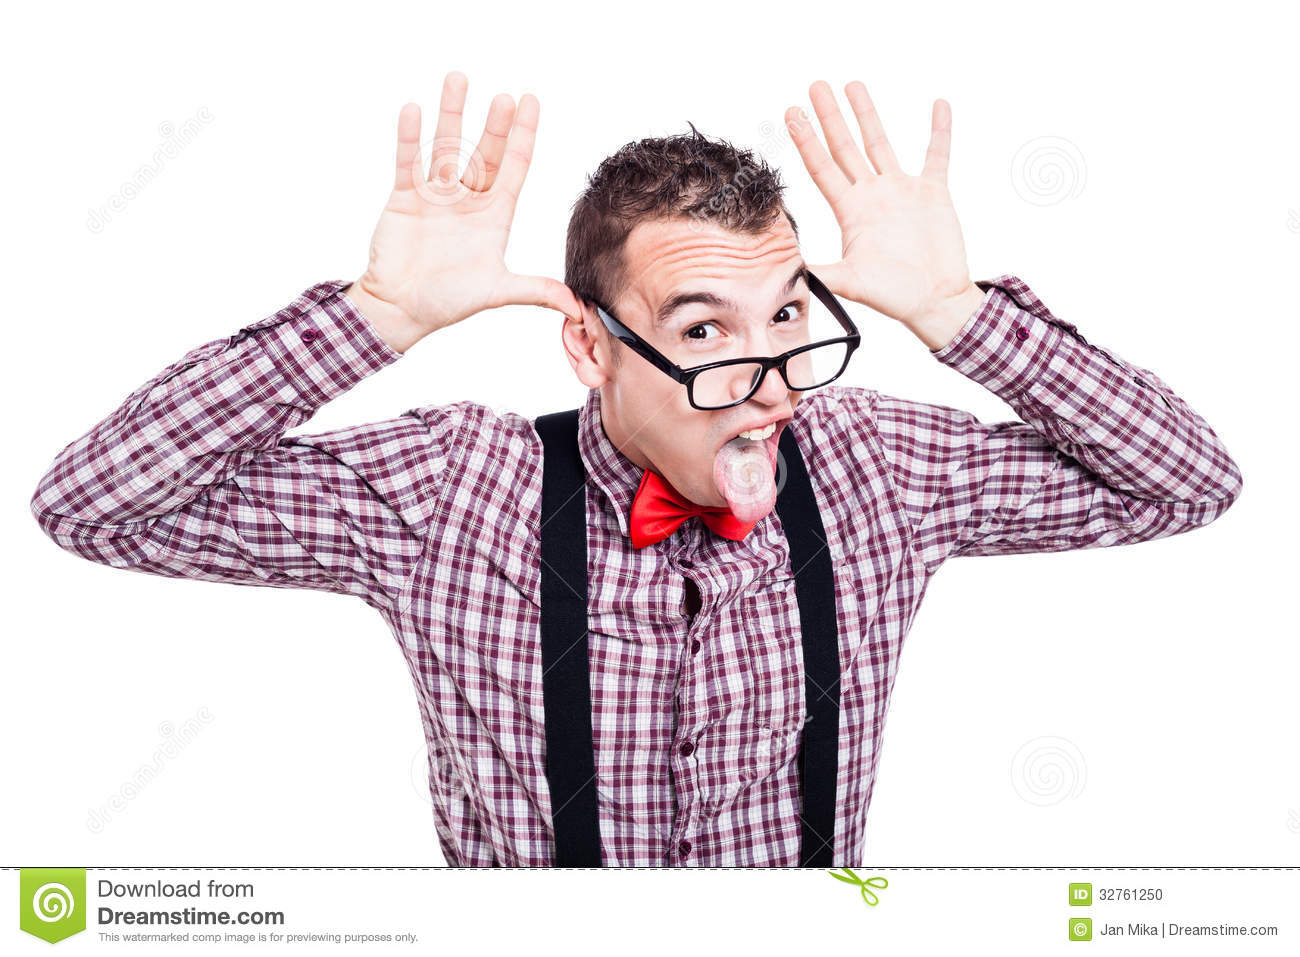 Funny Nerd Sticking Out Tongue Stock Photo - Image: 32761250